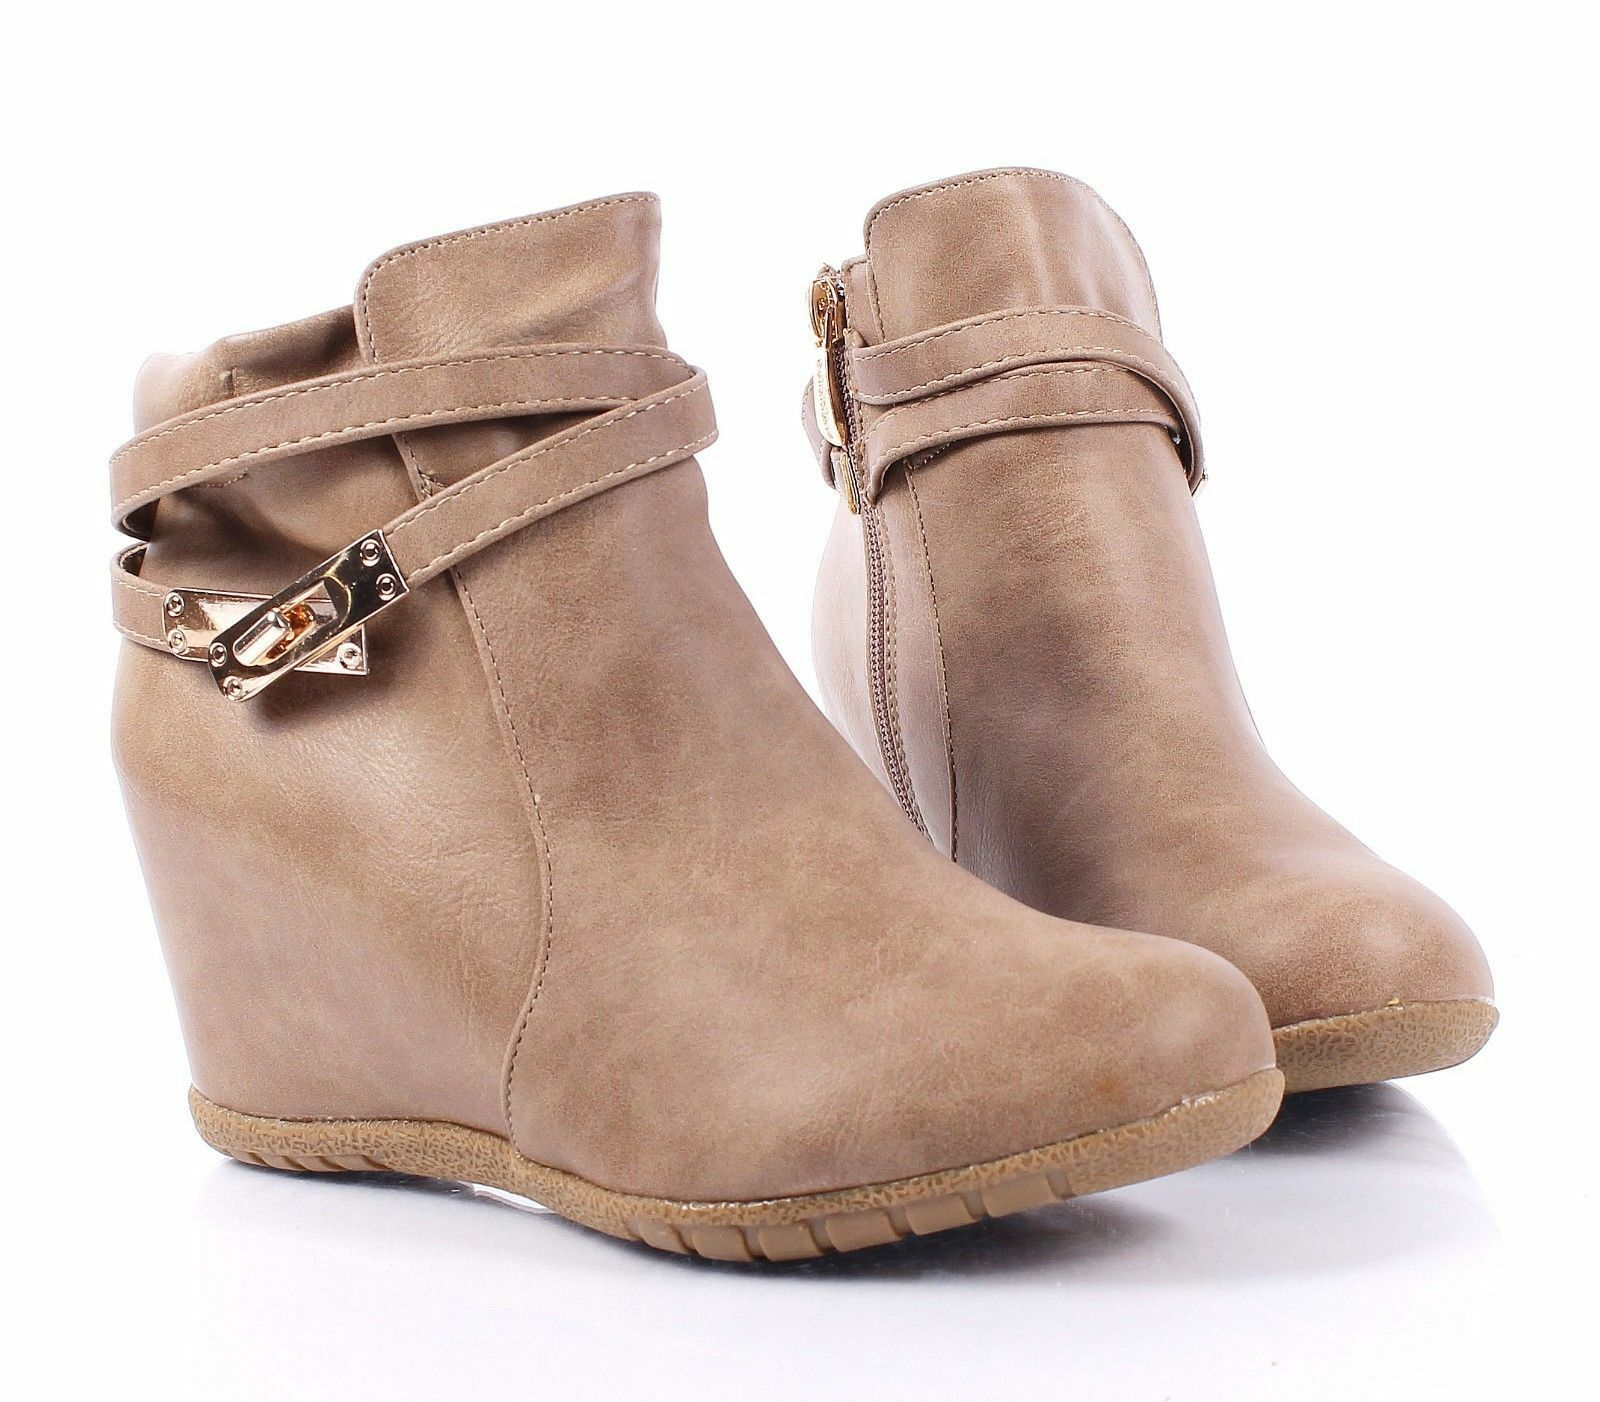 Taupe Fashion Booties Womens Wedges Hidden Heels Pumps Ankle Boots Size 10